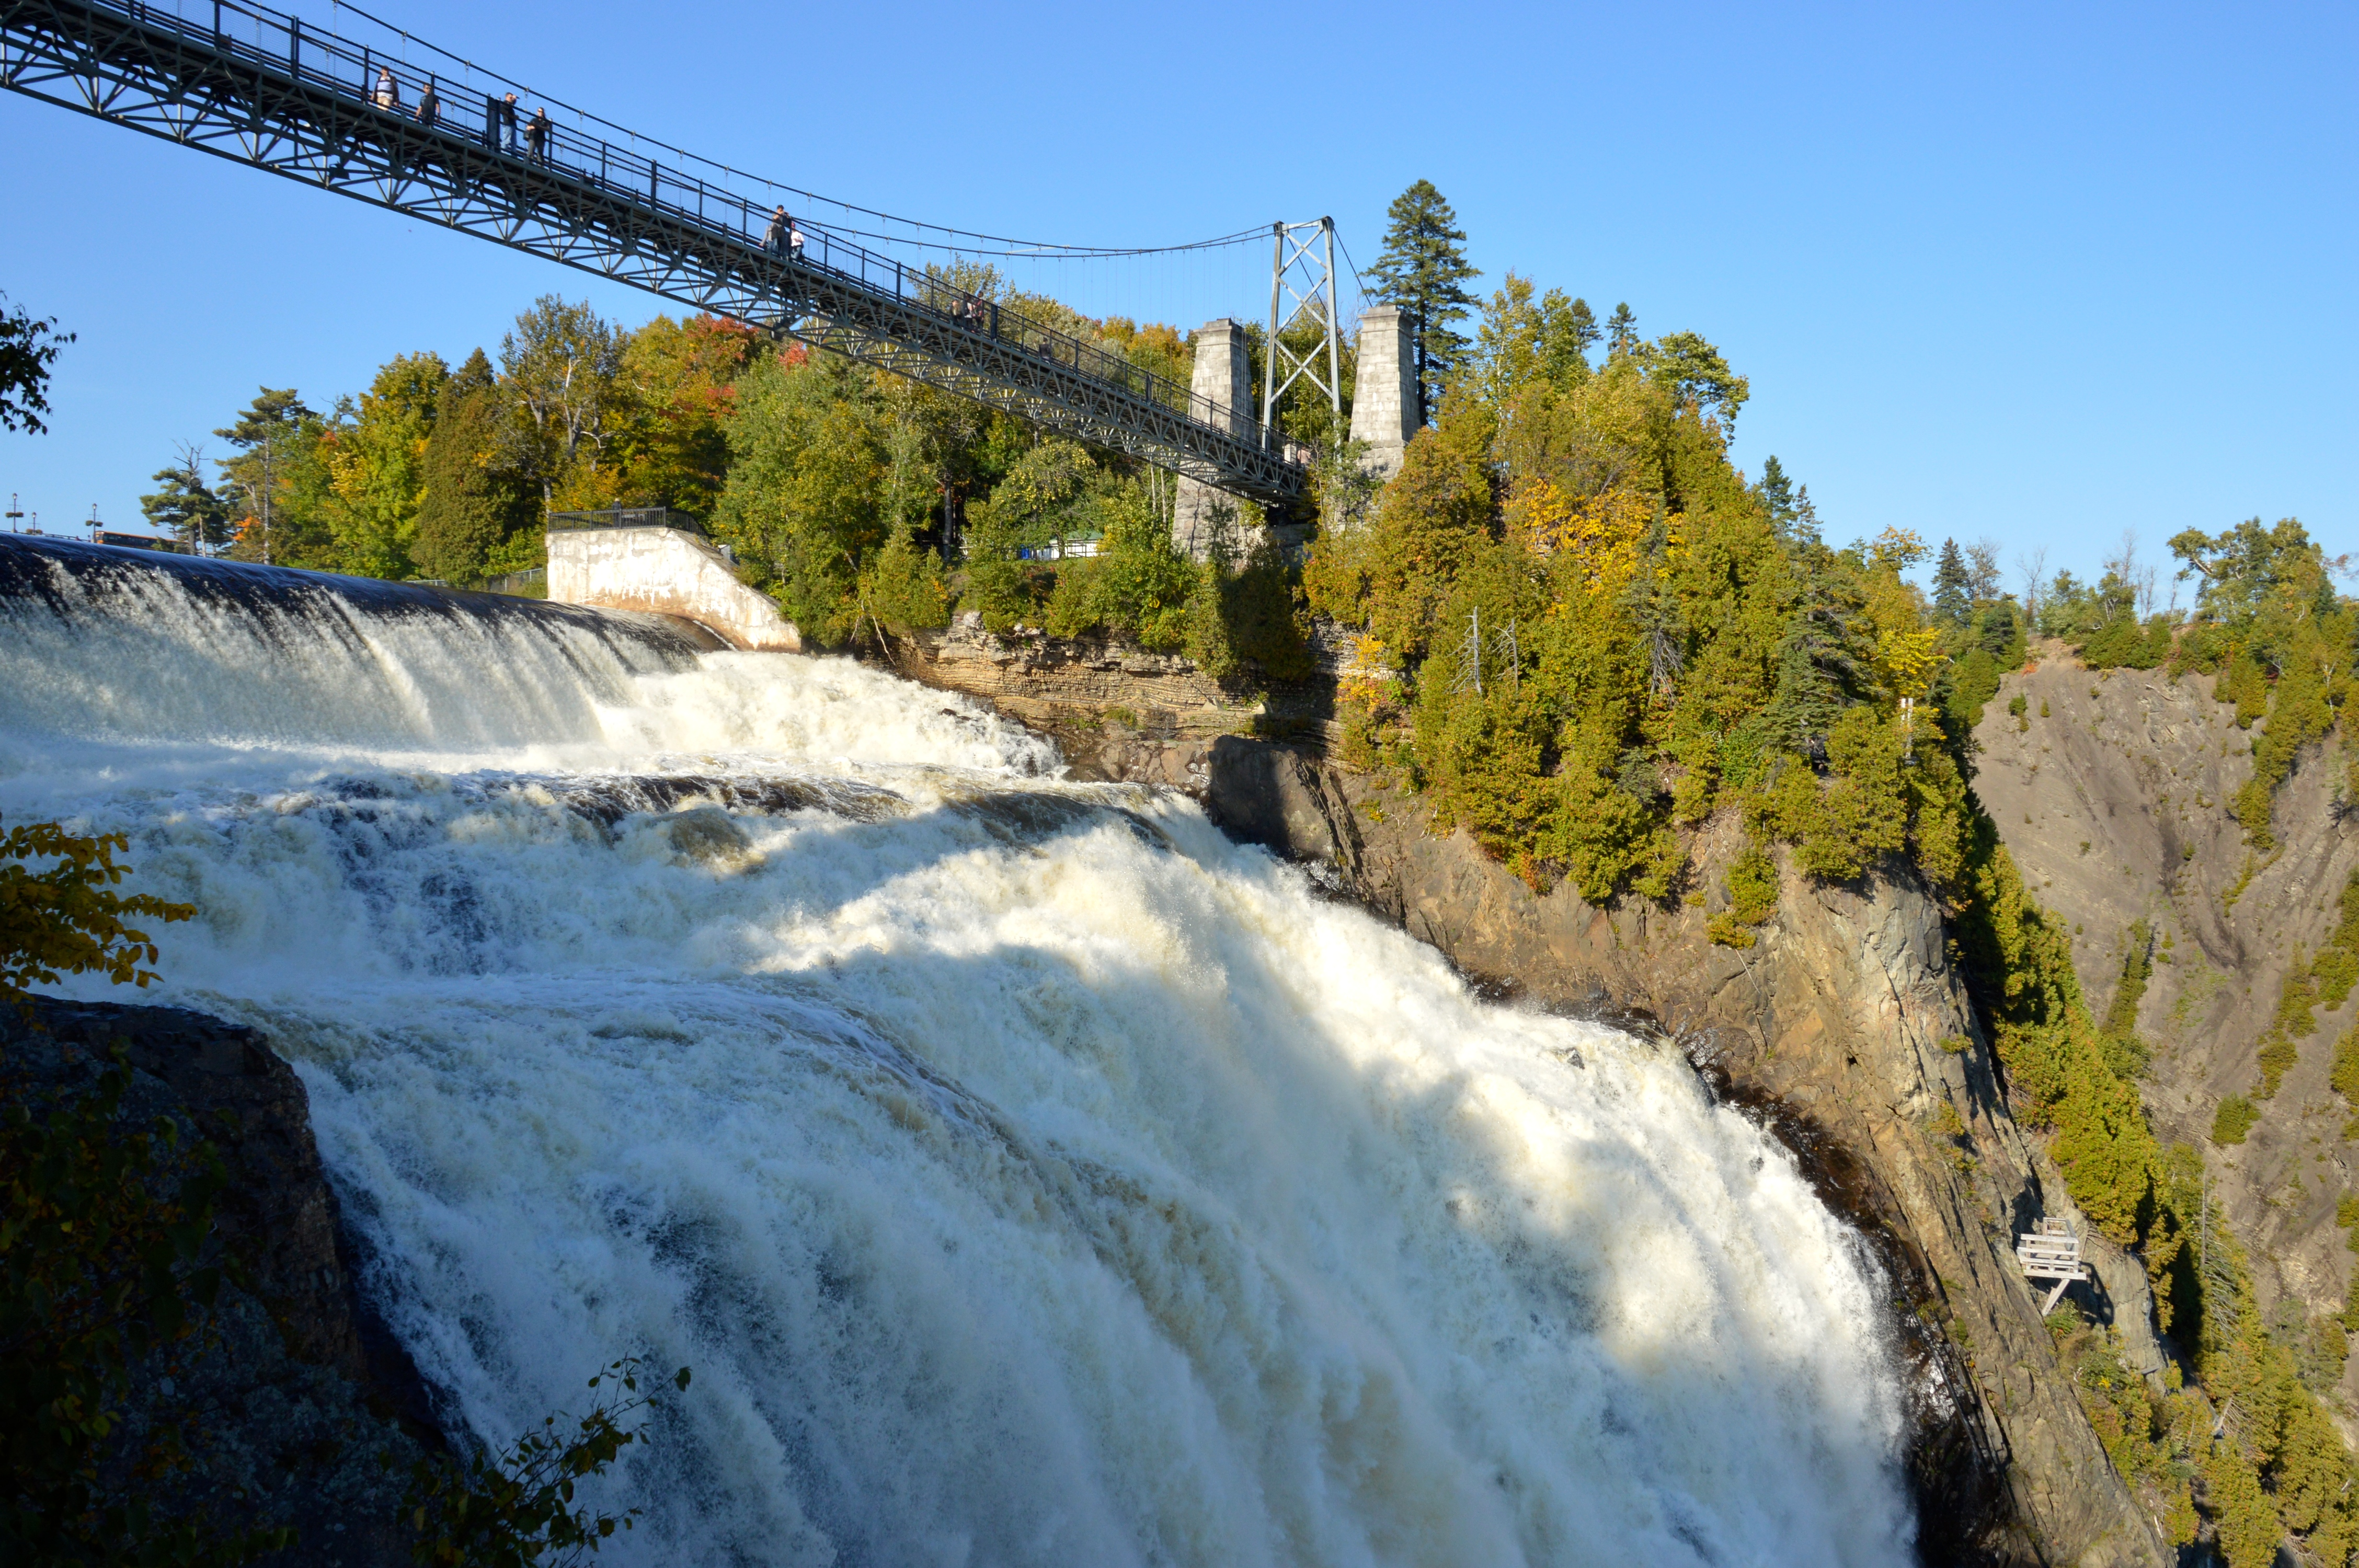 The Top Of Montmorency Falls